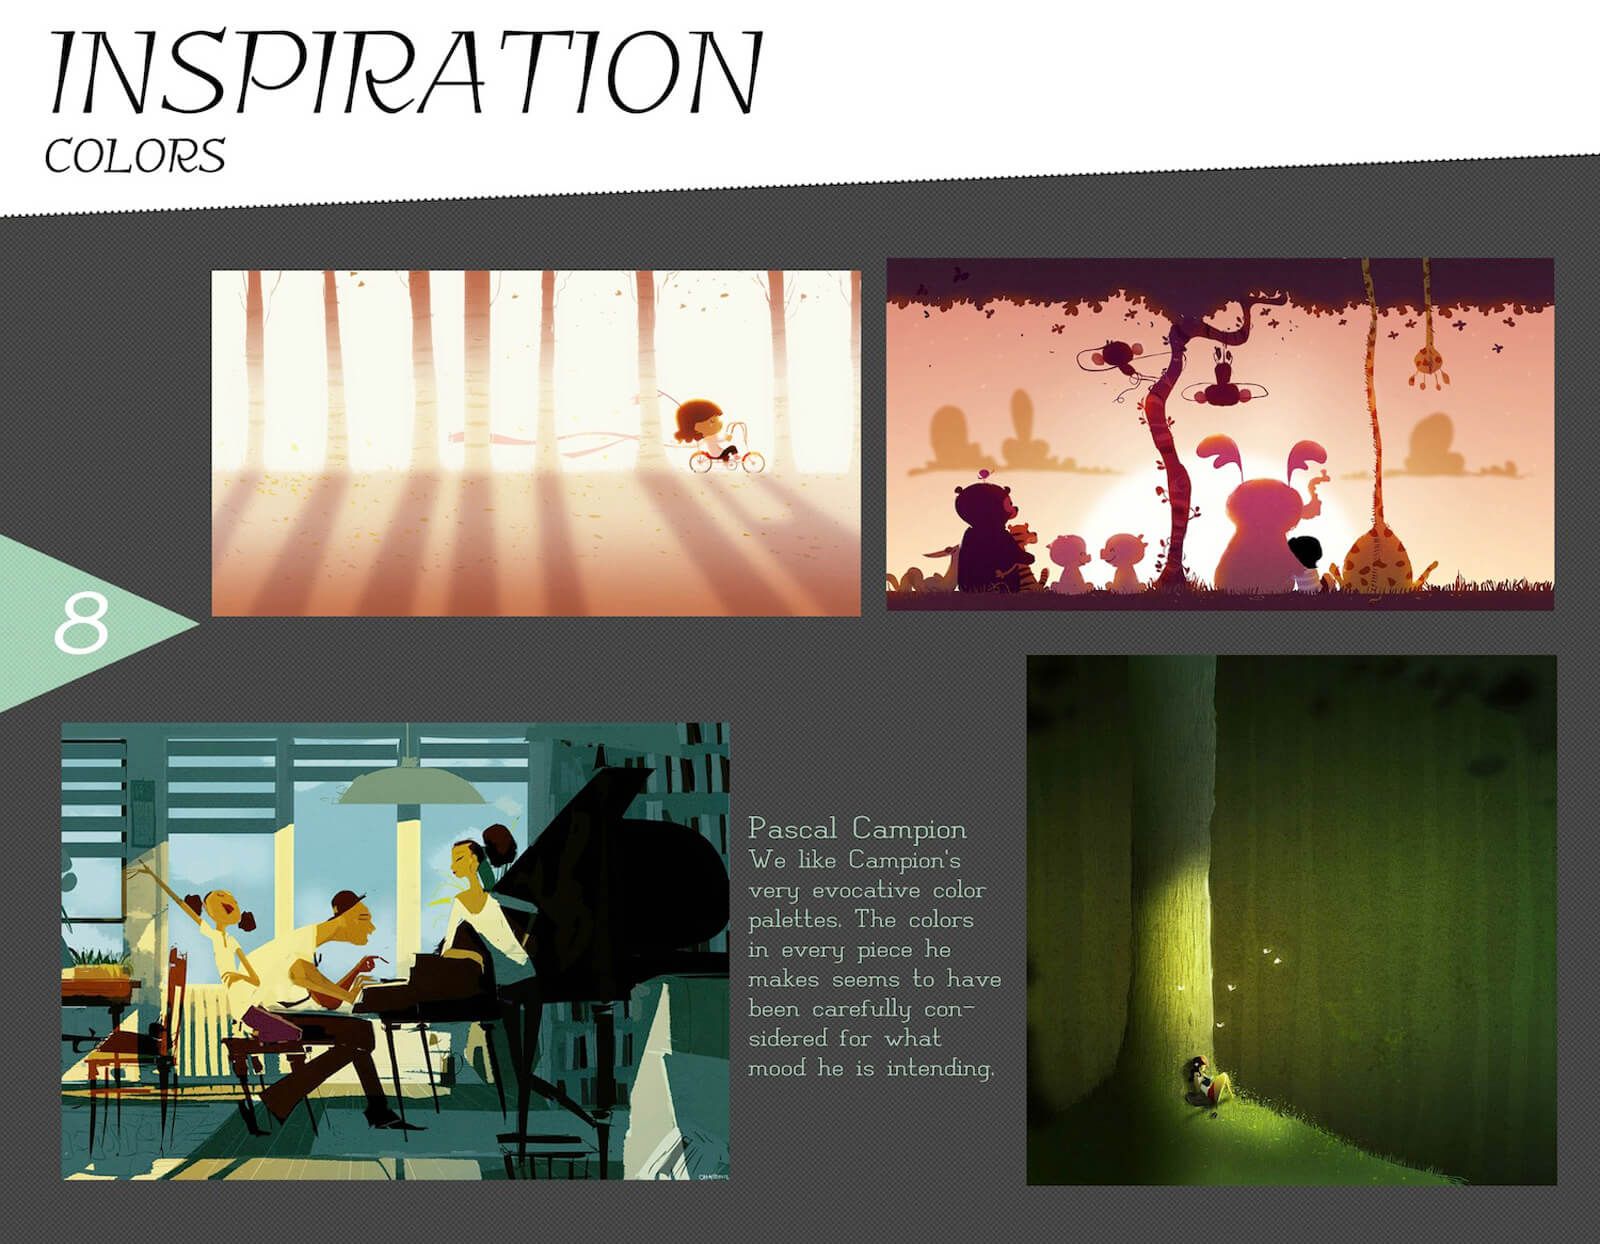 Color inspiration slide for the film Super Secret, with references highlighting the color and lighting of Pascal Campion art